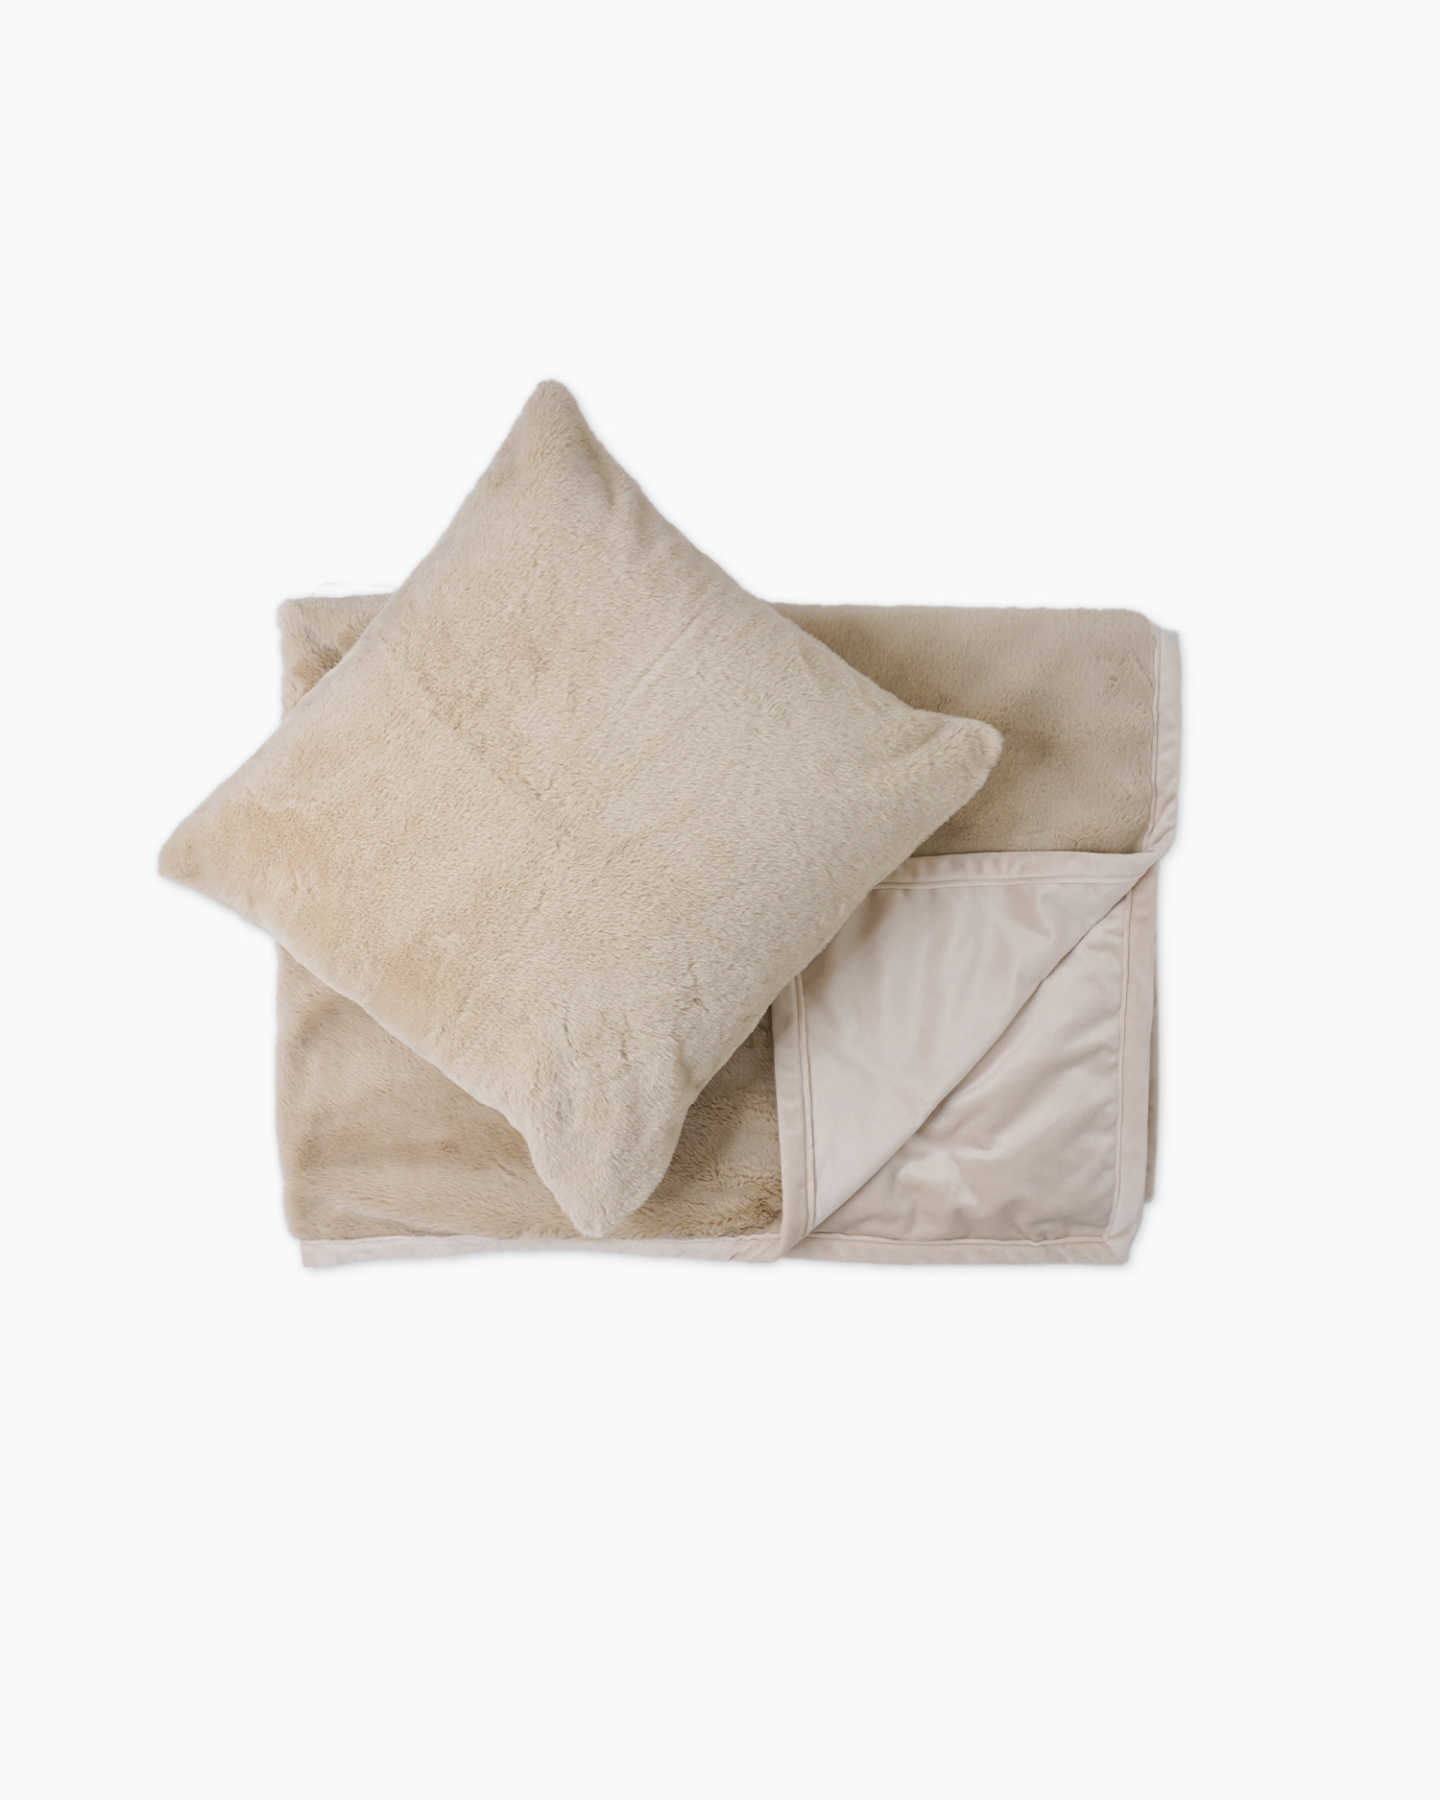 Plush Recycled Faux Fur Throw & Pillow Cover Set - Light Camel